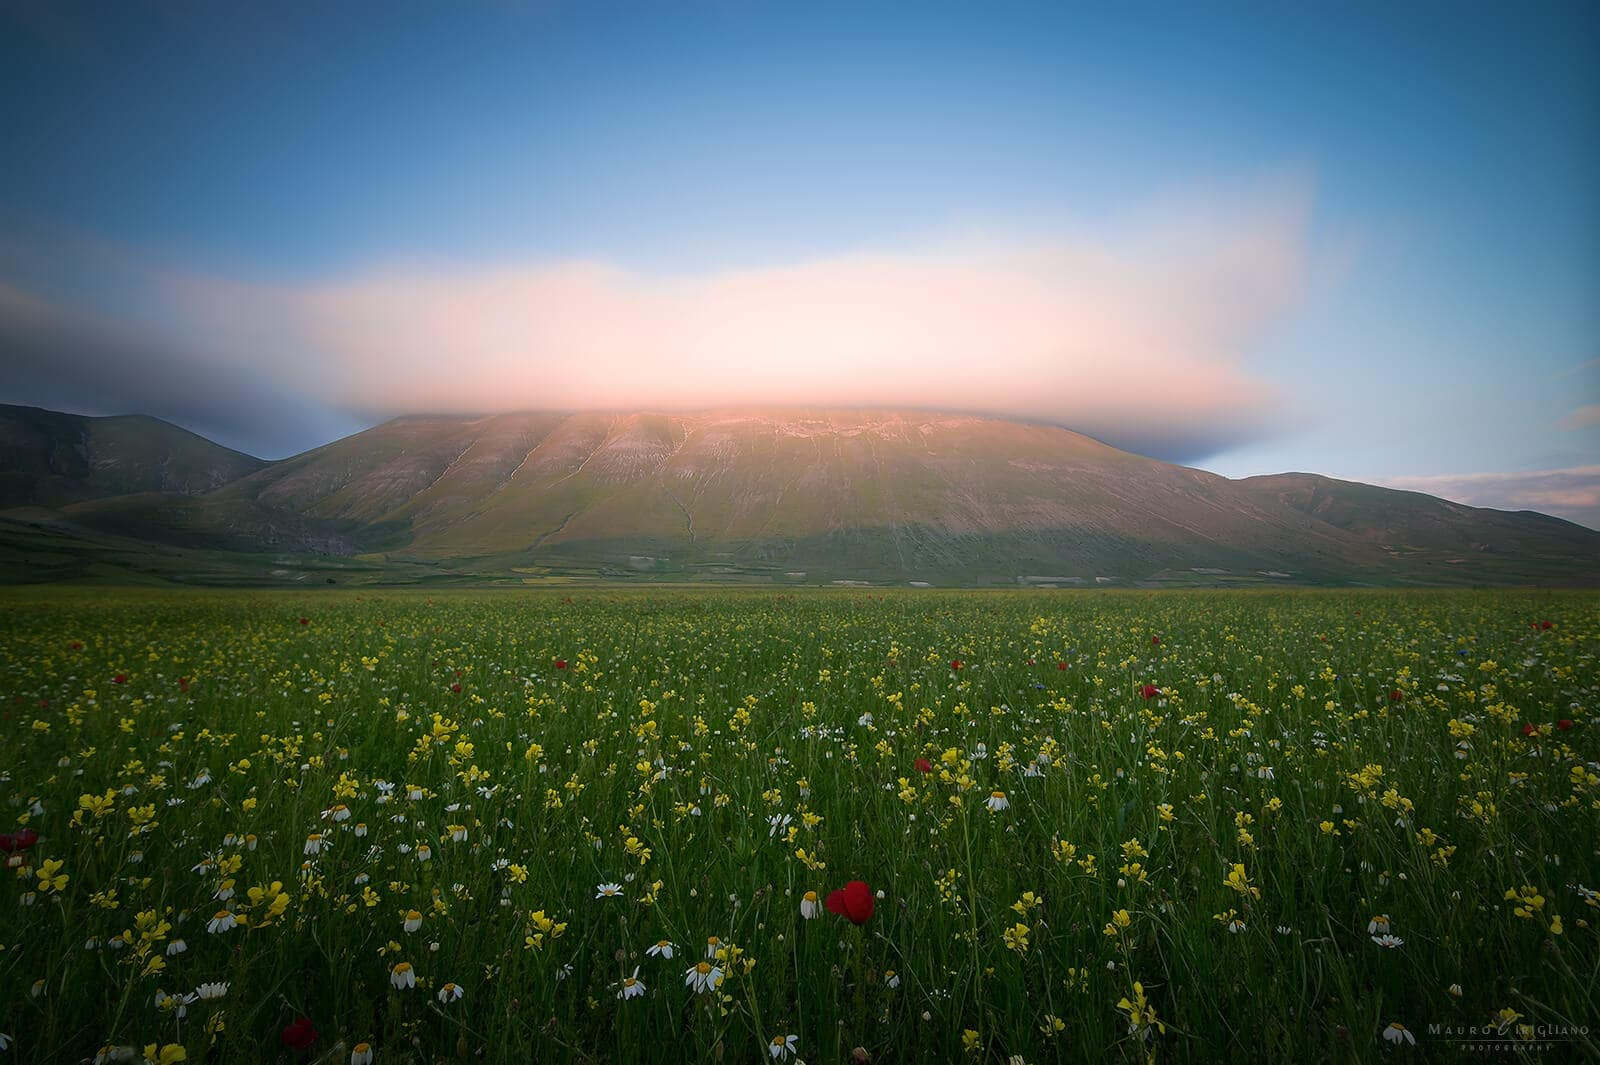 flowery field with mountain veiled by clouds